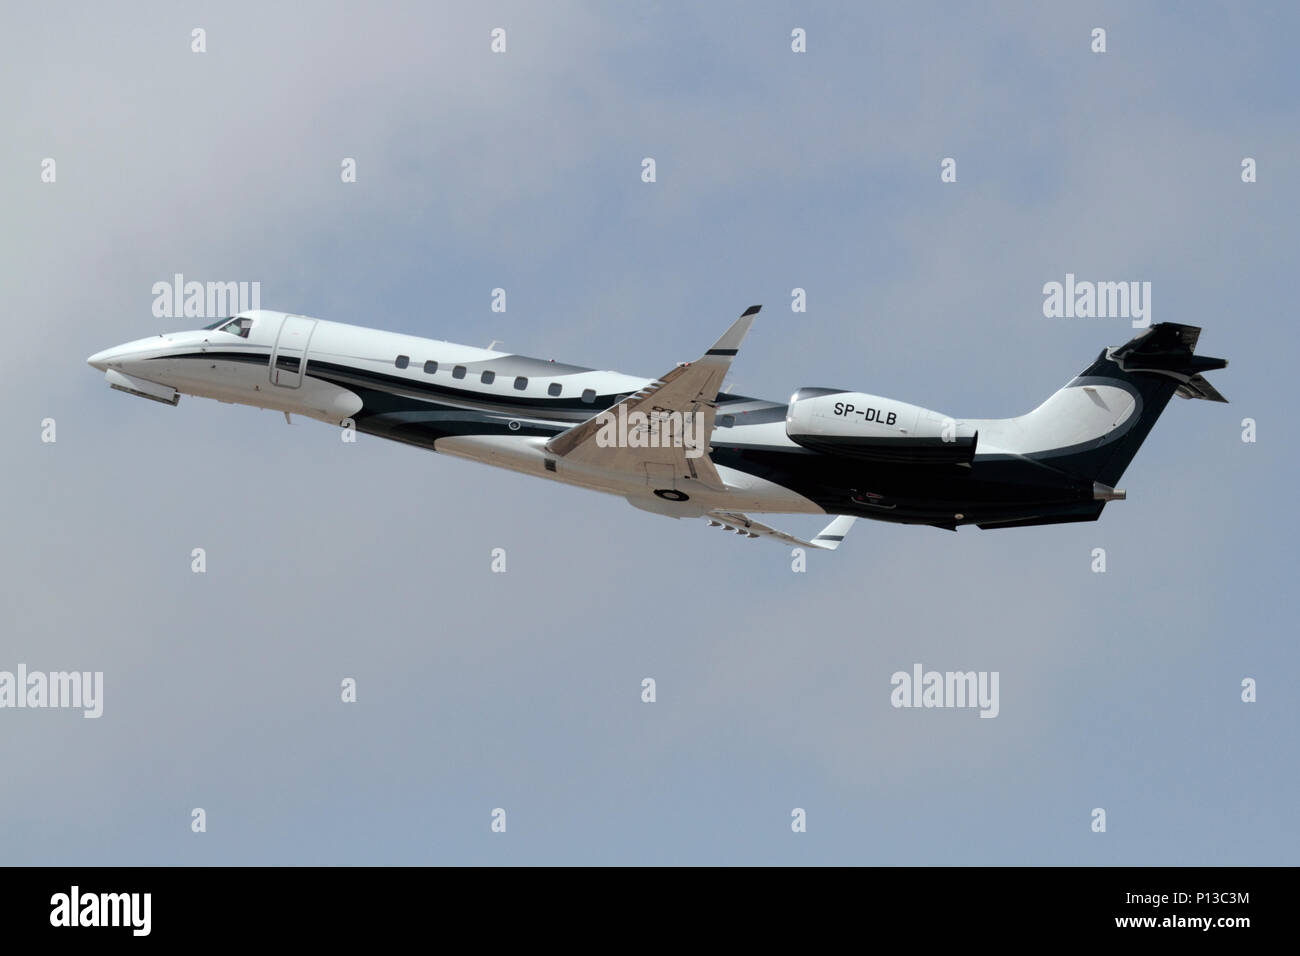 Embraer Legacy 600 business jet aircraft flying after taking off - Stock Image